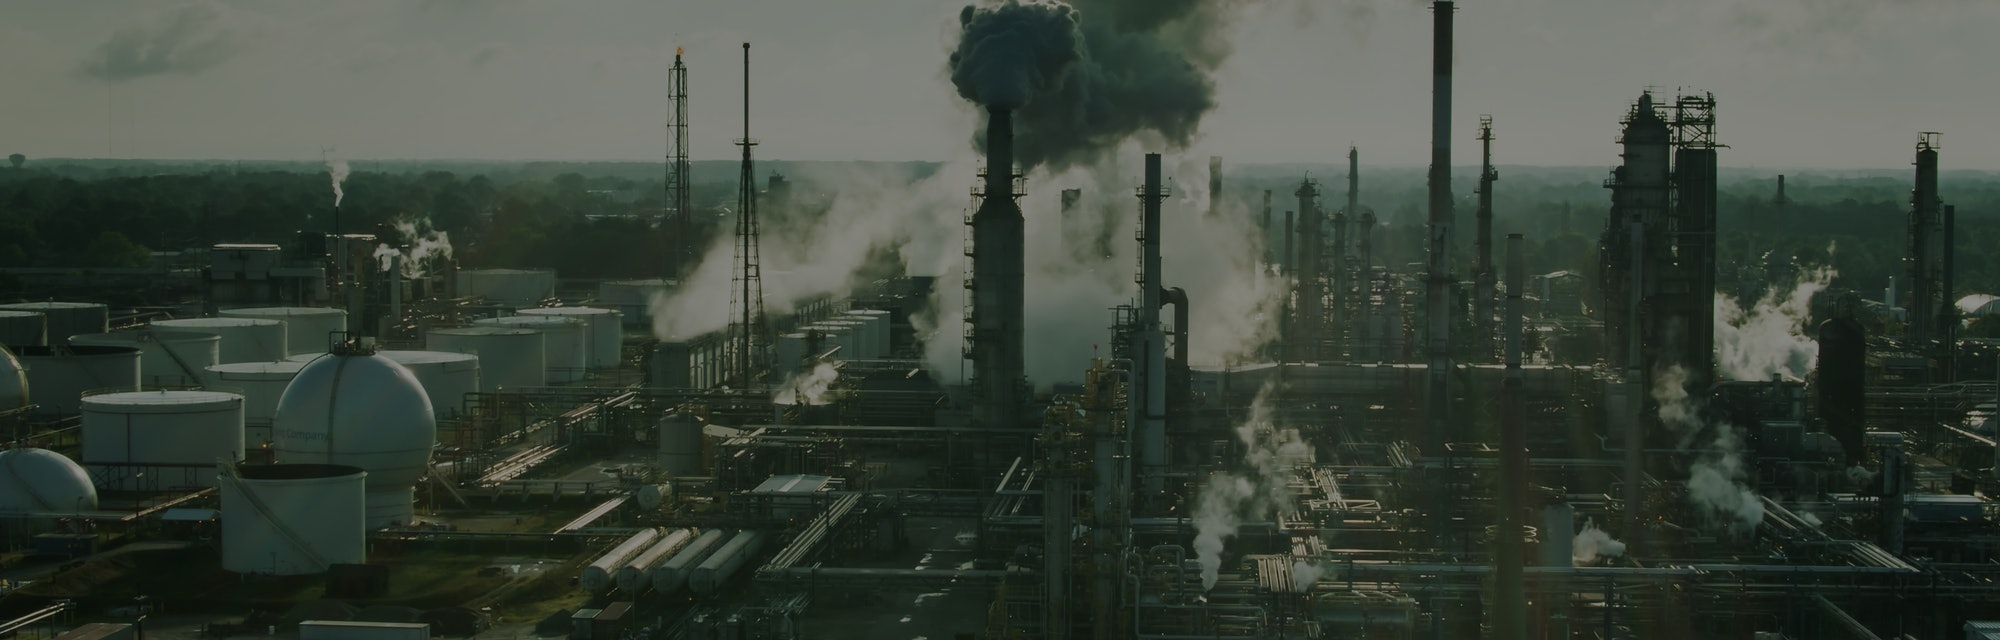 Aerial shot of a large oil refinery in East Toledo, Ohio on a summer morning.